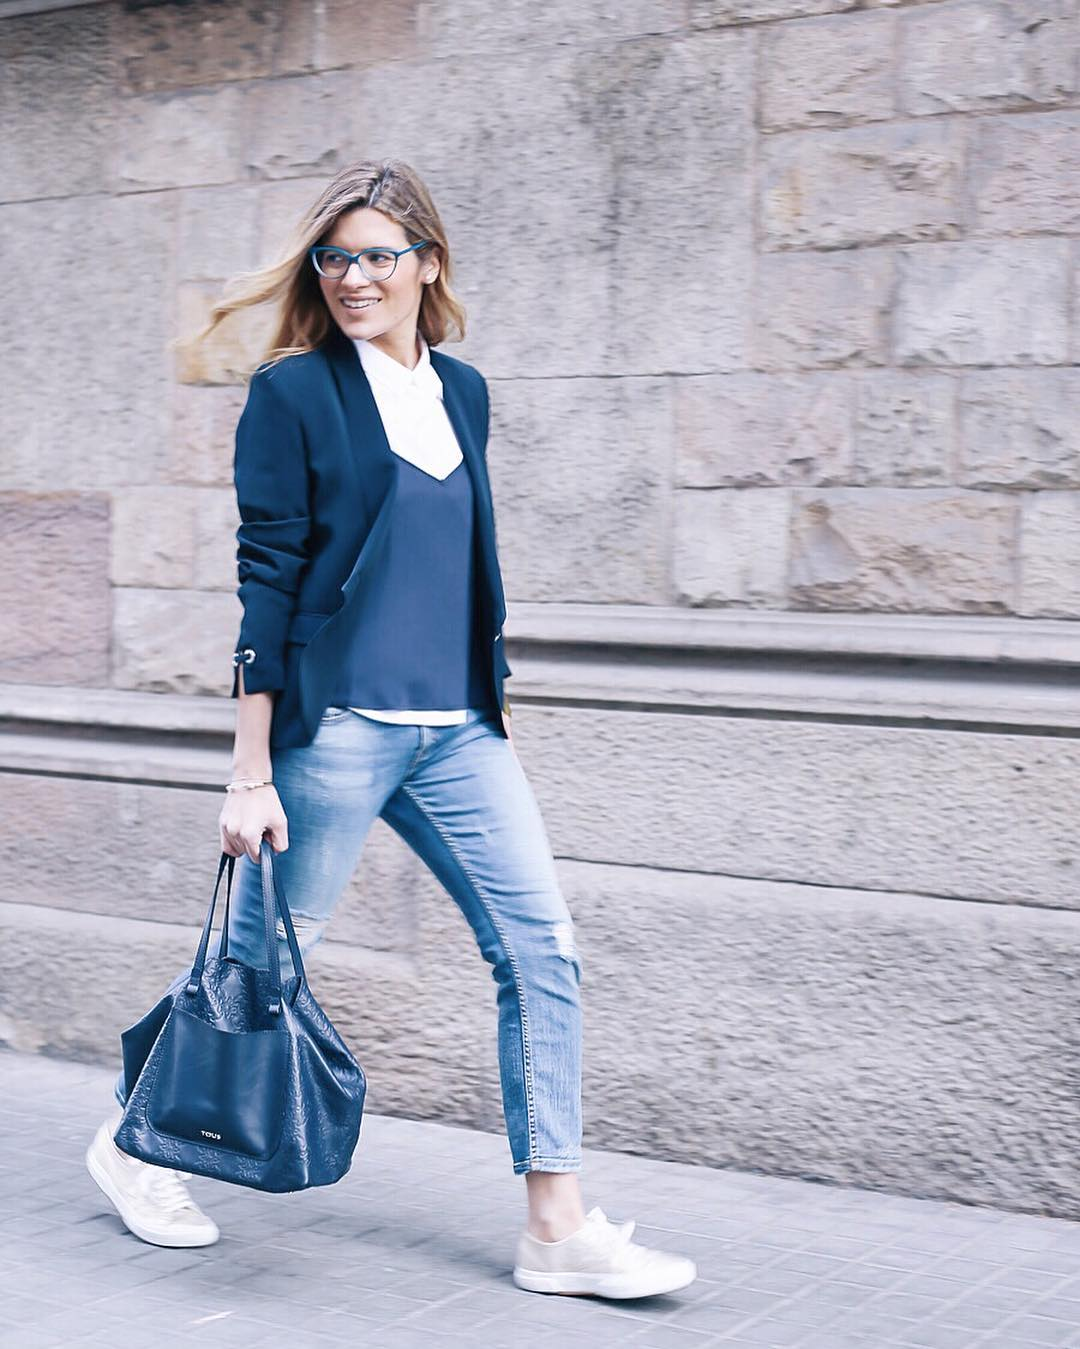 14+ Casual Outfit Designs, Ideas For Women | Design Trends ...